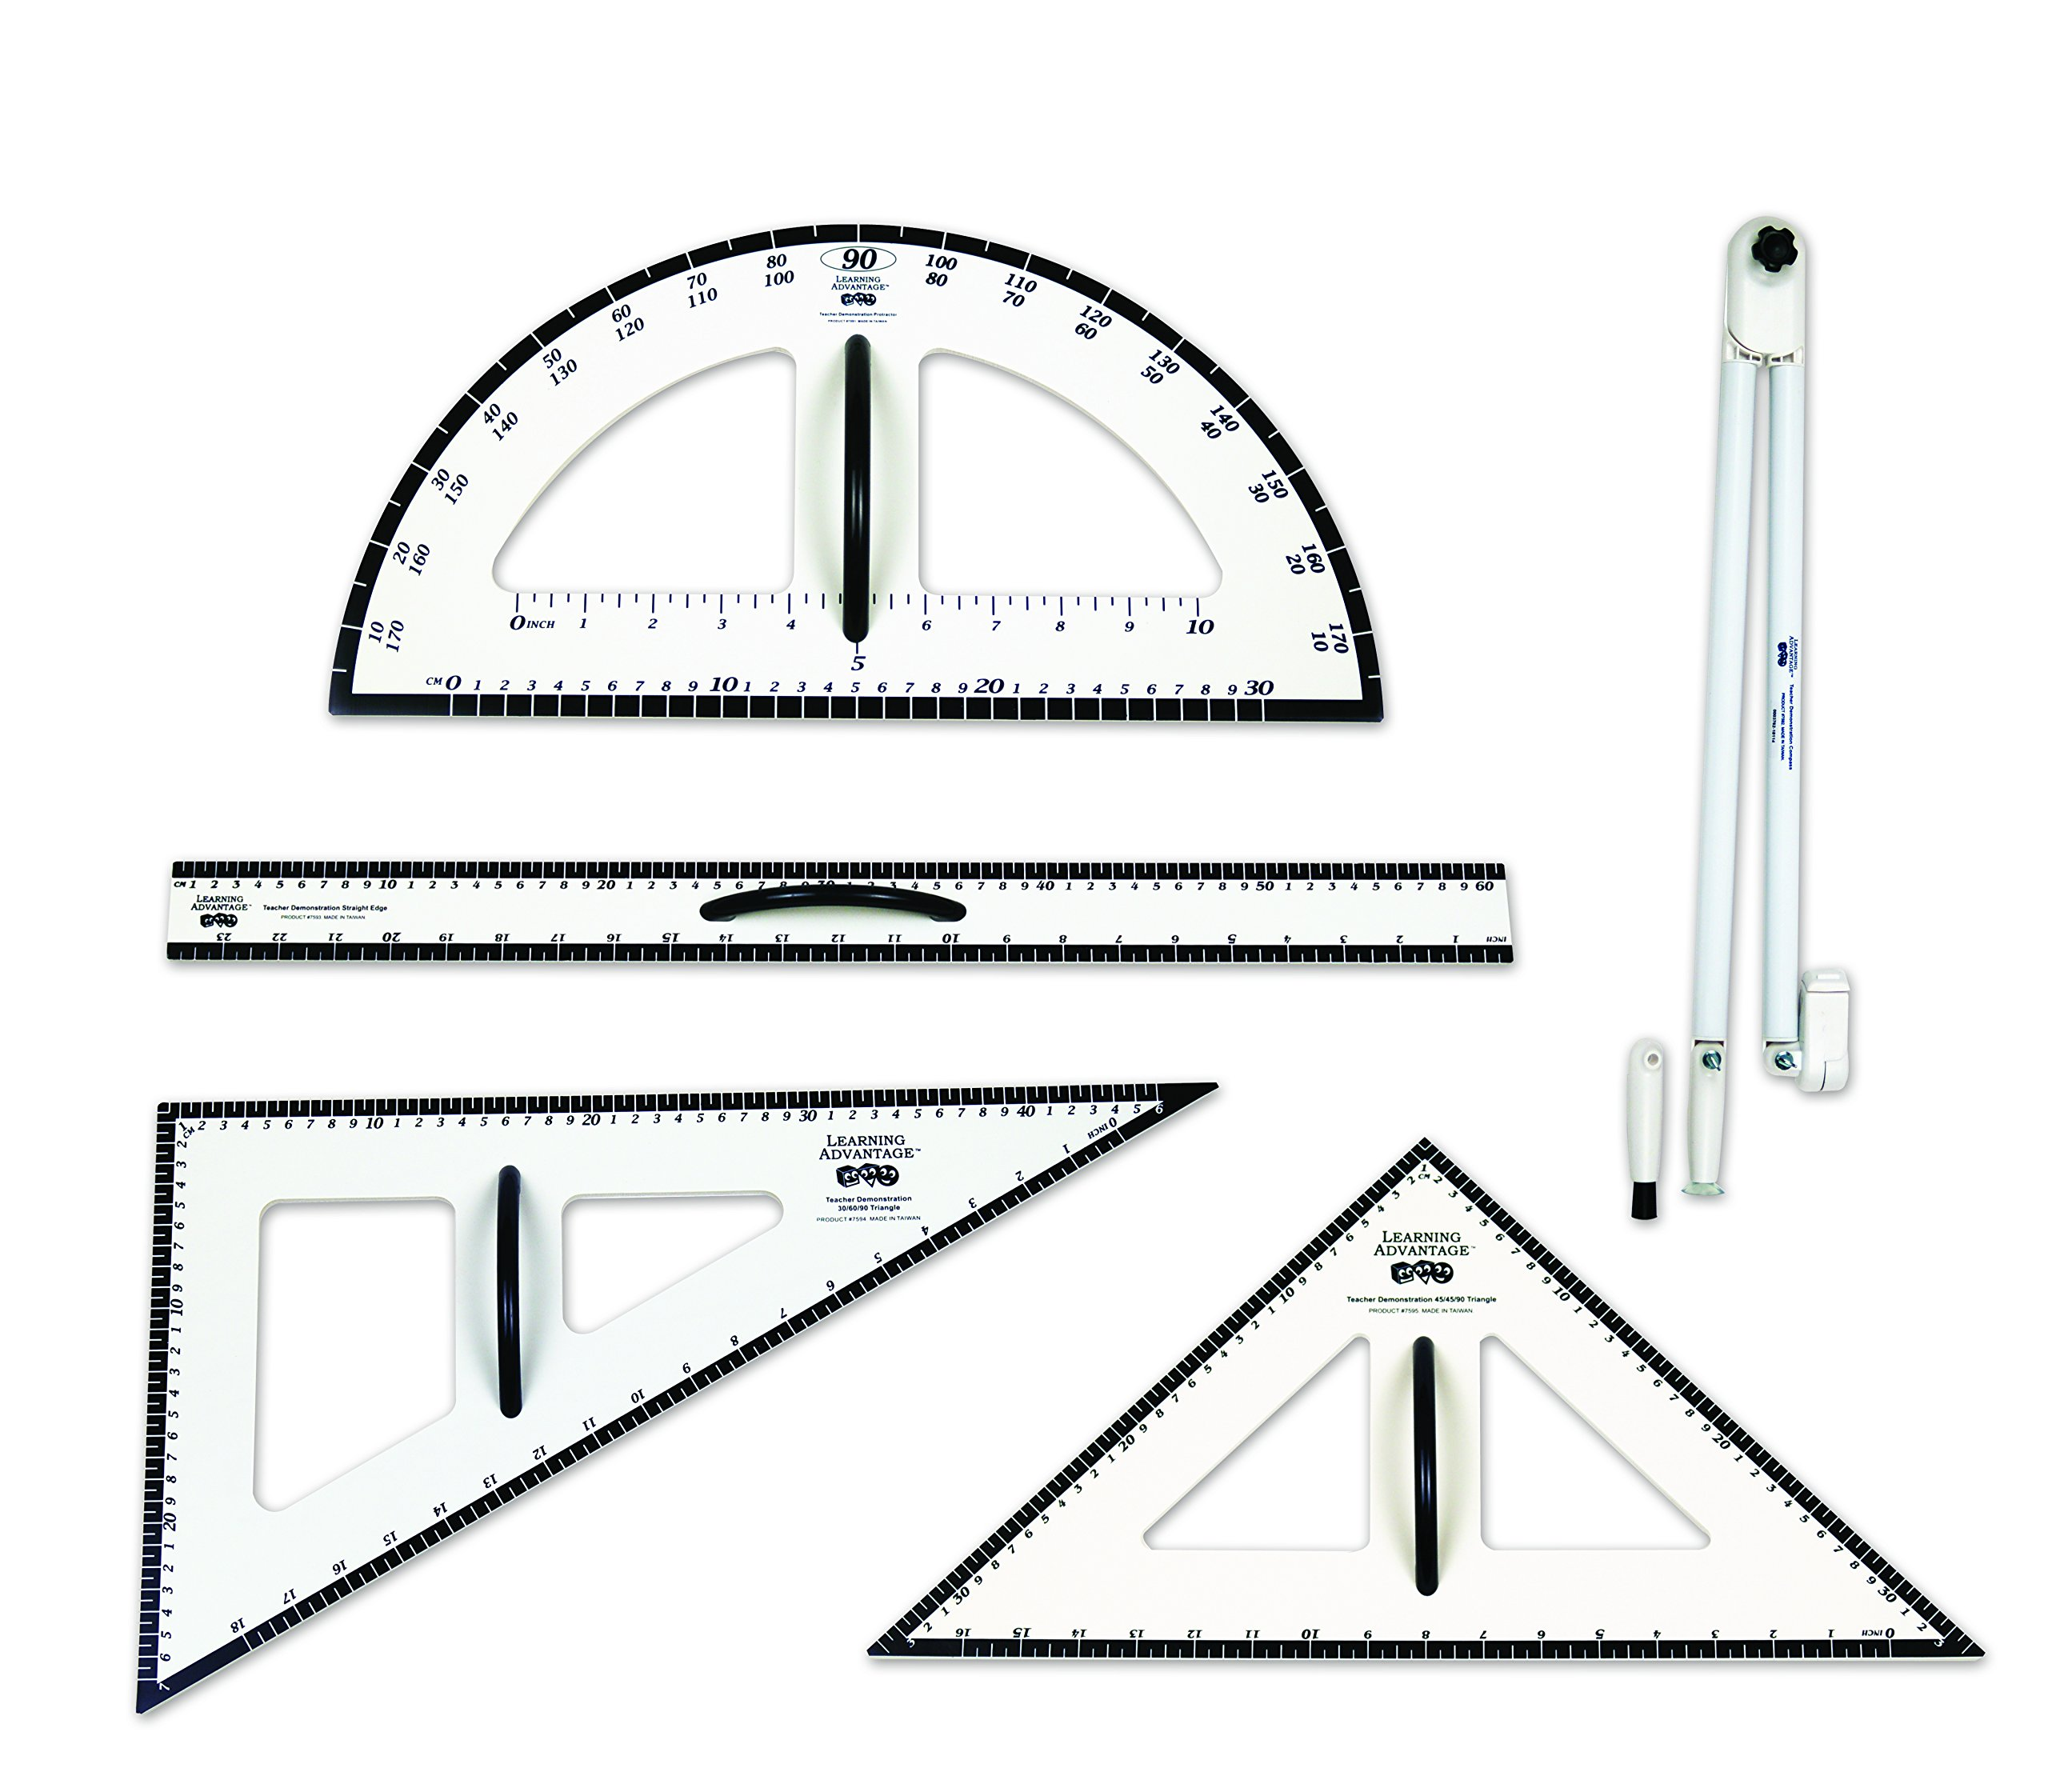 Learning Advantage Dry Erase Magnetic Measurement Set Whiteboard Compass, Protractor, Ruler and Triangles by Learning Advantage (Image #1)